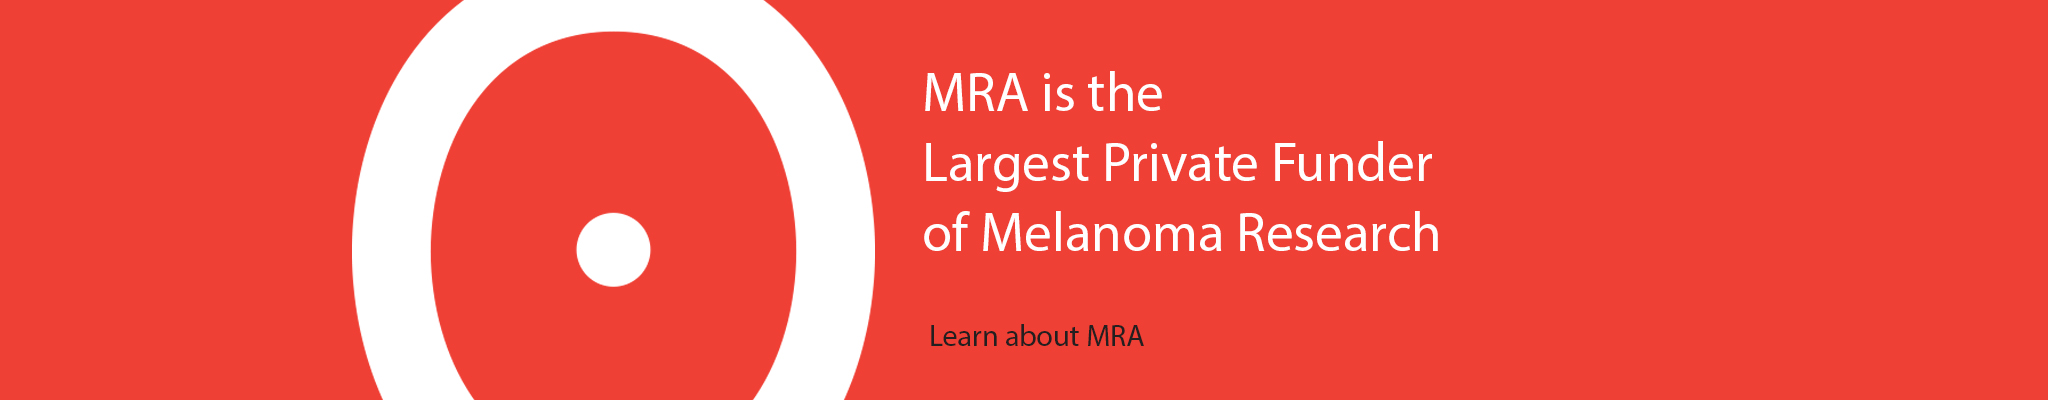 Learn about MRA